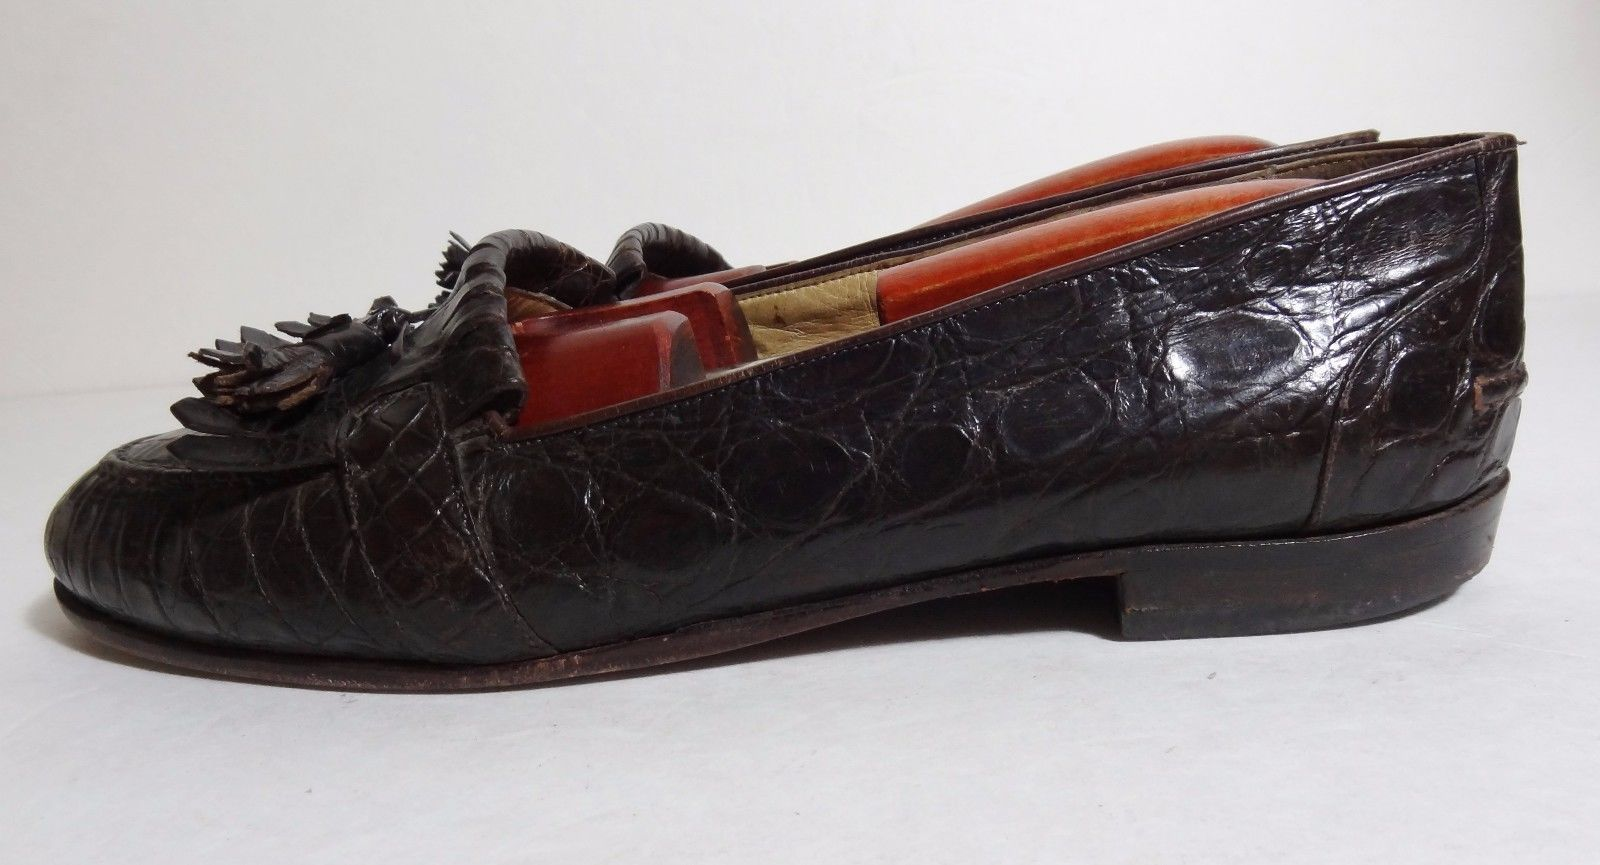 795b64f2936  1200 BRAGANO by COLE HAAN Brown MENS GENUINE CROCODILE TASSEL LOAFERS SIZE  9 D